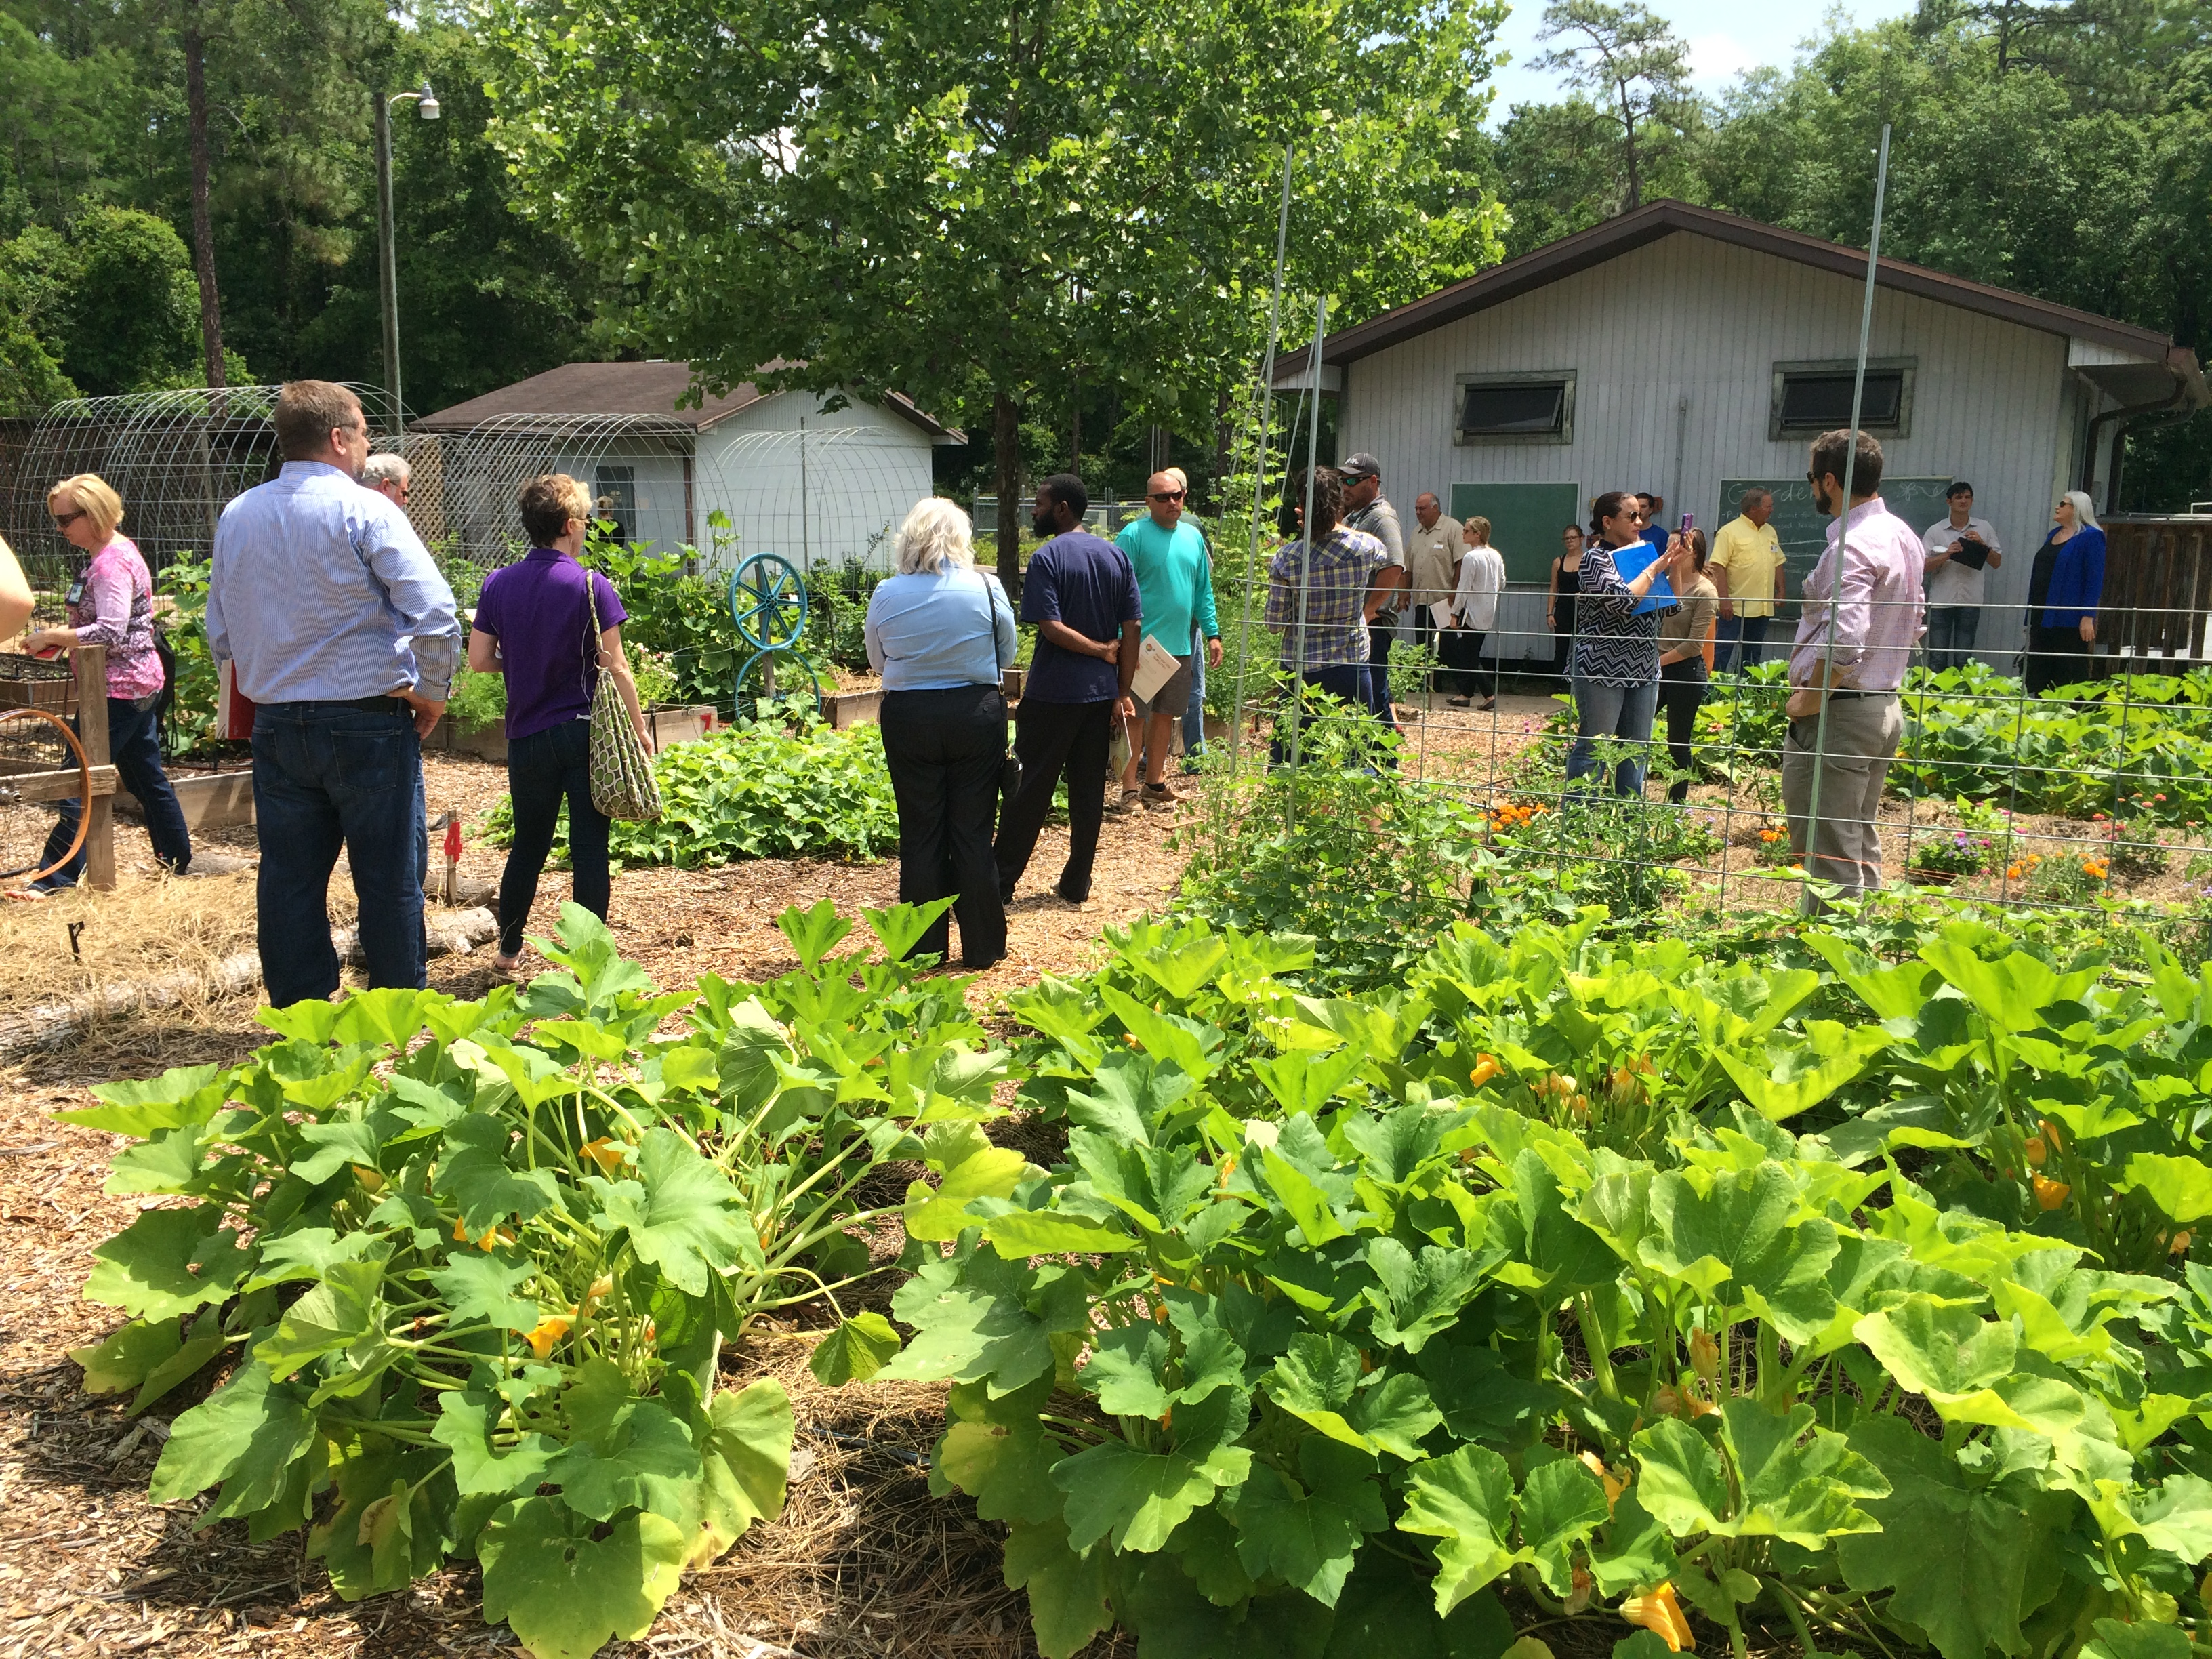 Hosting a farm tour is an excellent way to connect with customers. Photo by Molly Jameson.